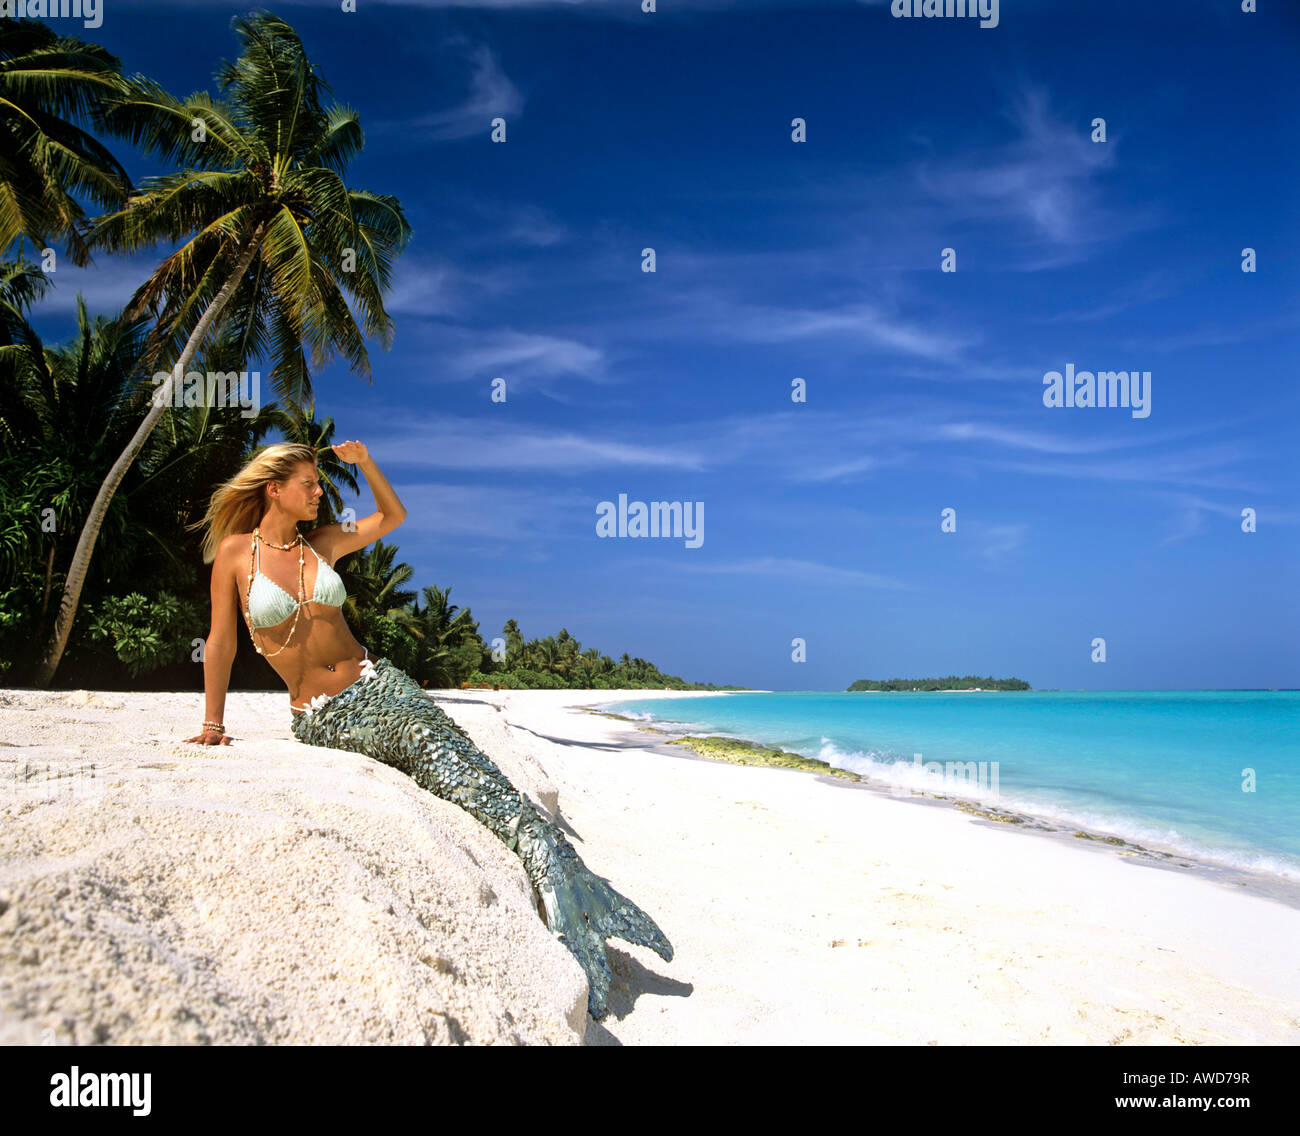 Indian Beach: Mermaid On The Beach, Palm Trees, Maldives, Indian Ocean